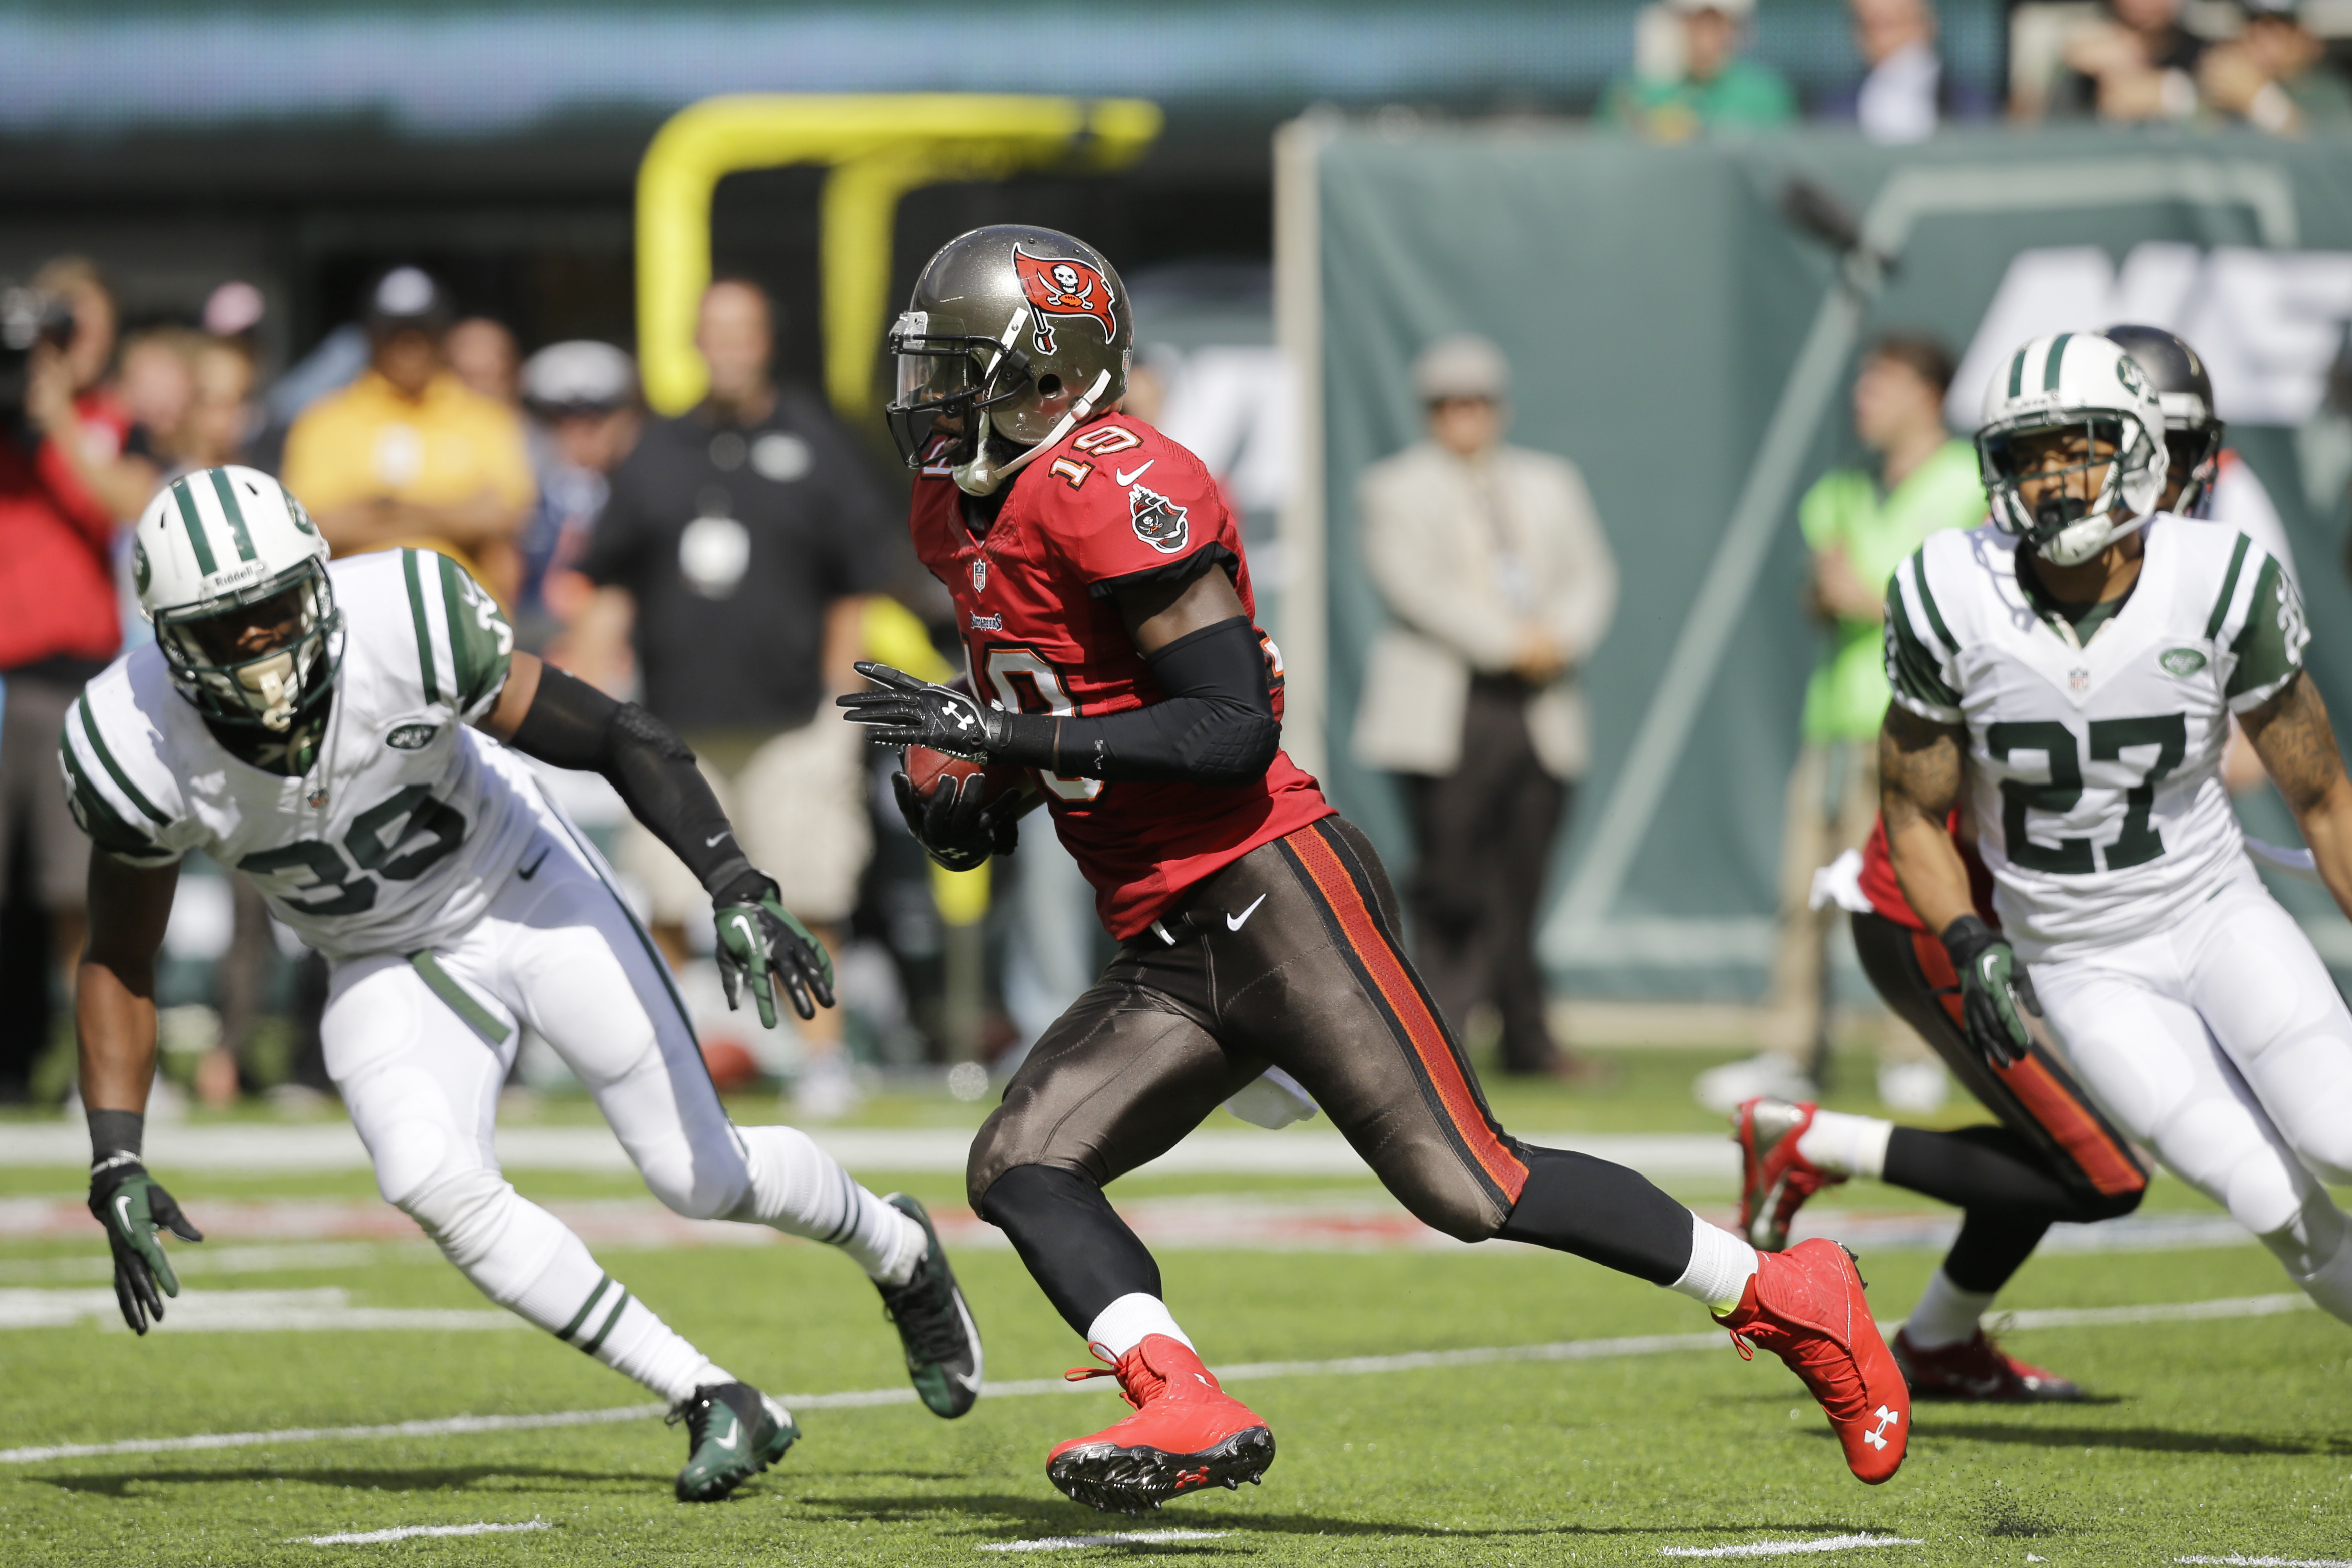 Tampa Bay Buccaneers wide receiver Mike Williams, center, runs with the ball as New York Jets strong safety Antonio Allen (39) and cornerback Dee Milliner (27) defend in the second half of an NFL football game, Sunday, Sept. 8, 2013, in East Rutherford, N